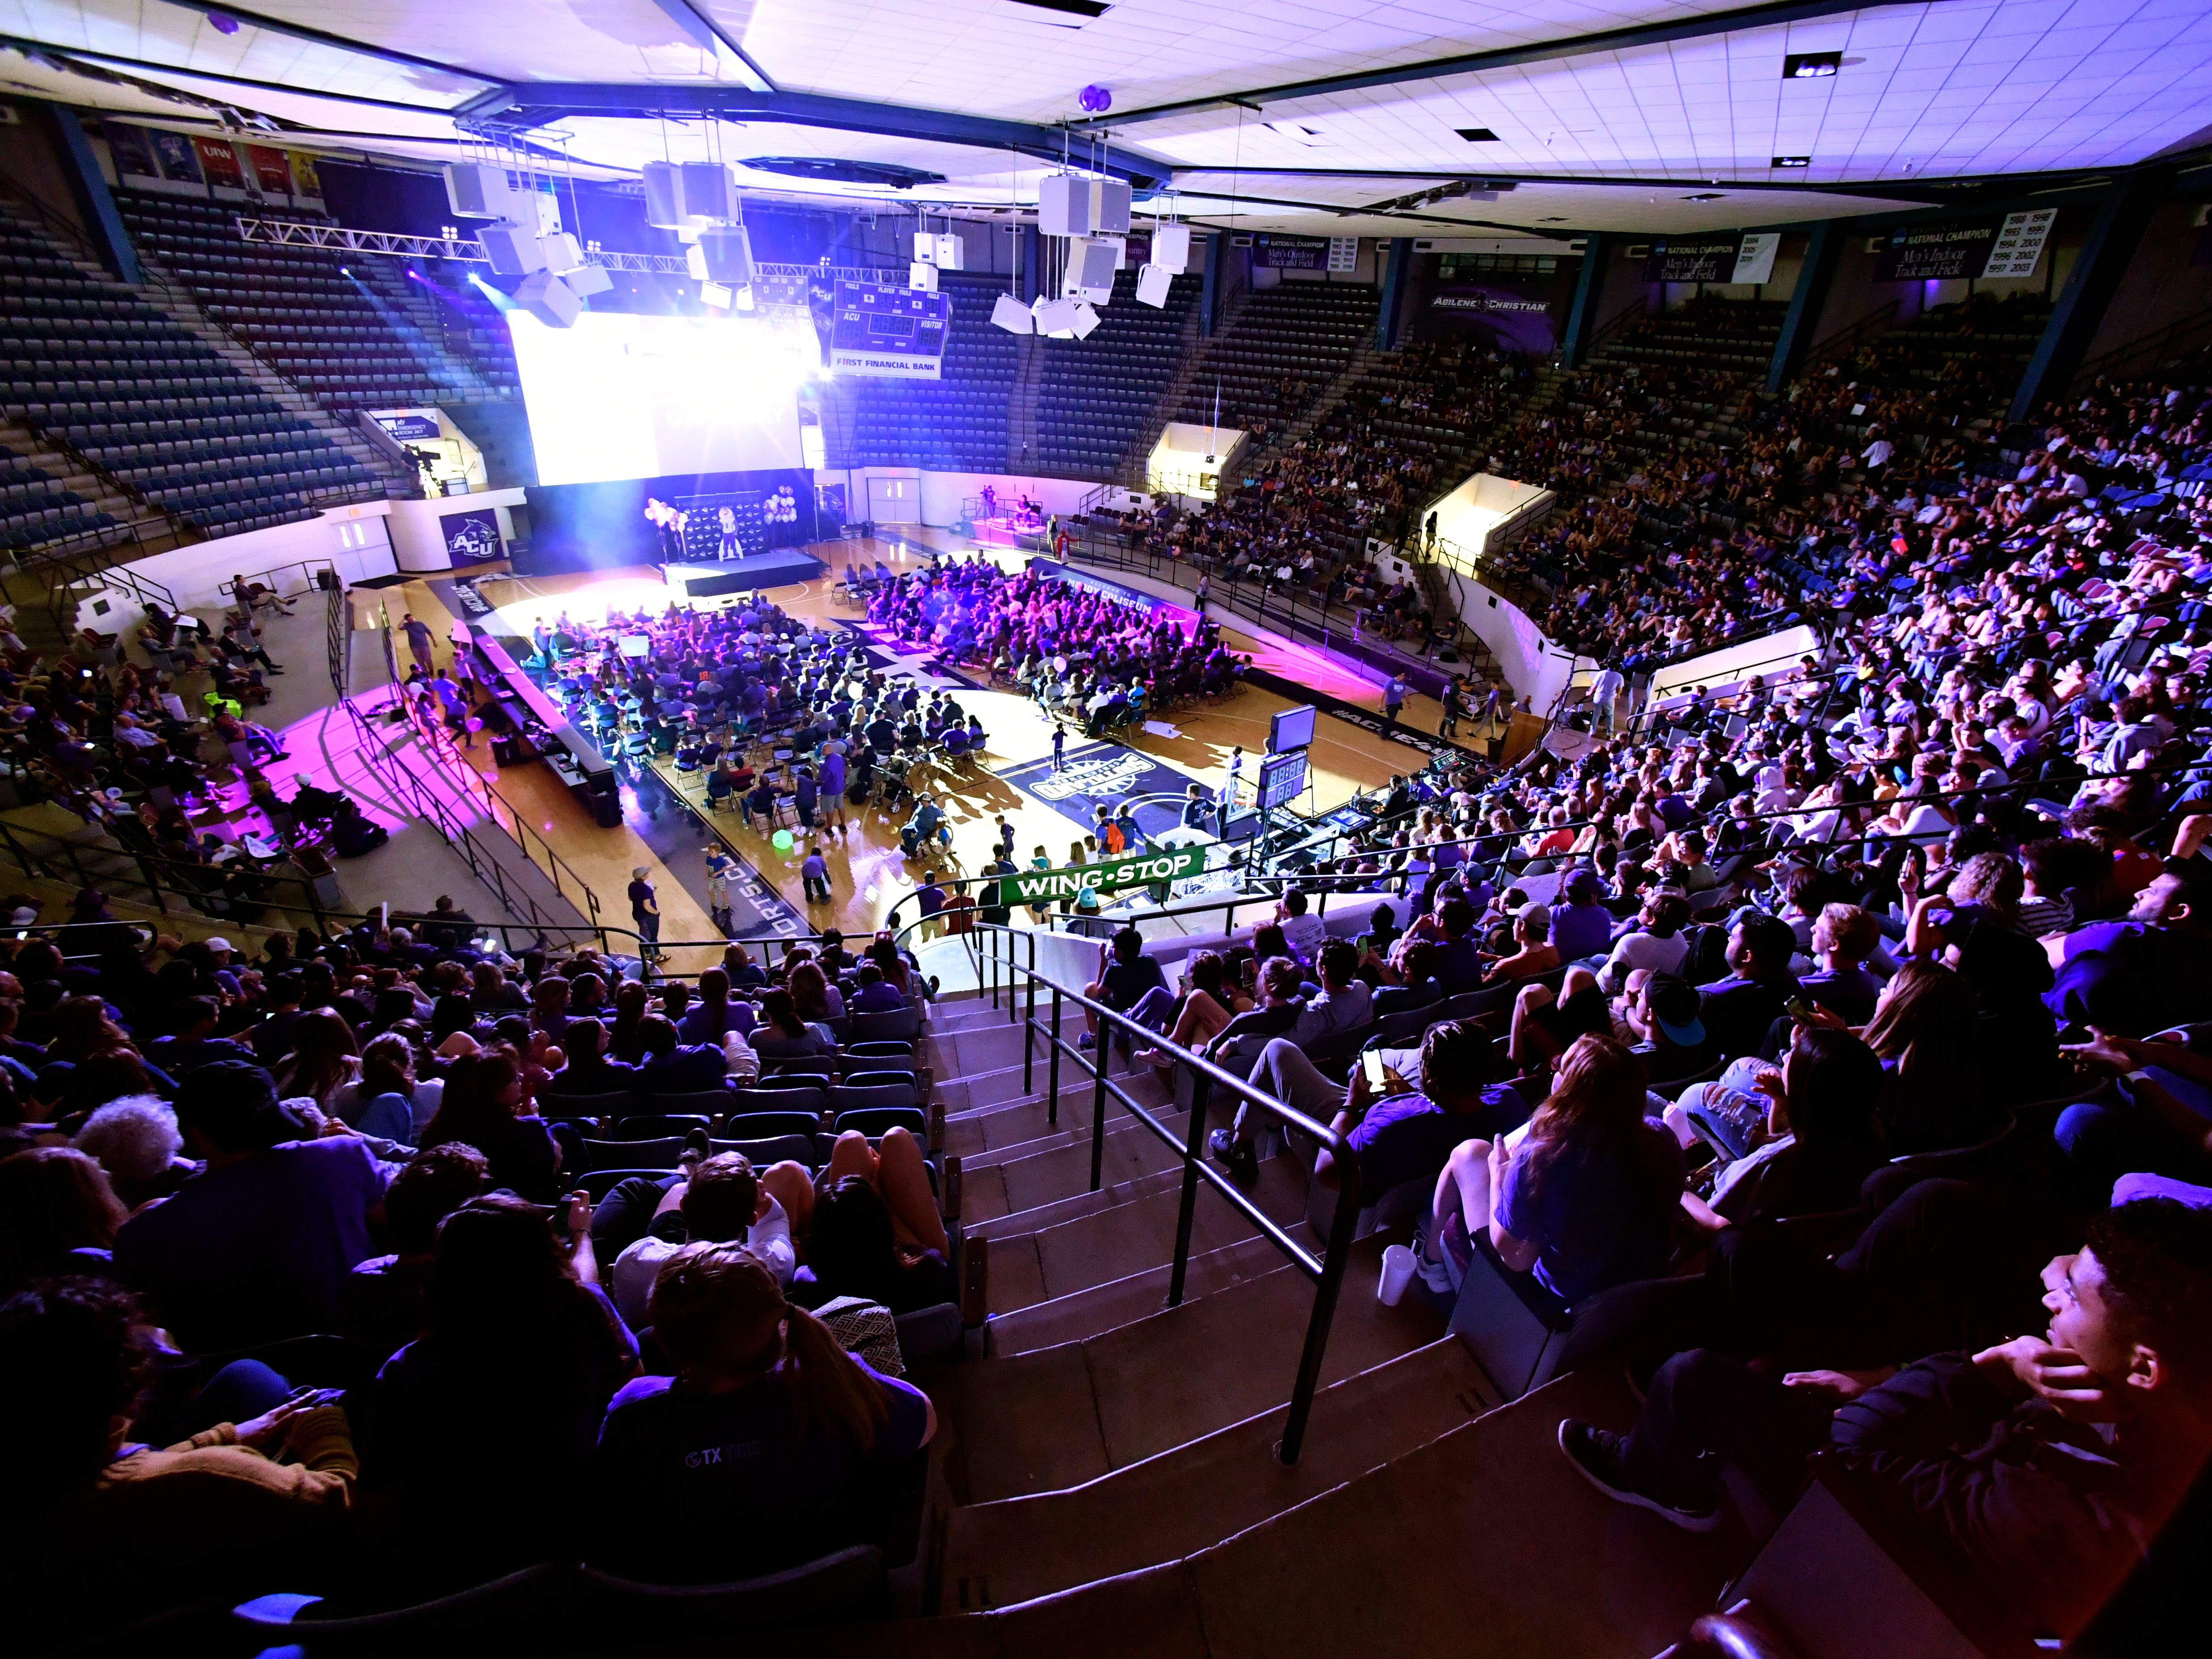 Fans watch in Moody Coliseum as the Abilene Christian University men's basketball team plays the University of Kentucky in ACU's first-ever trip to the NCAA Tournament Thursday March 21, 2019. Final score was 79-44, Kentucky.